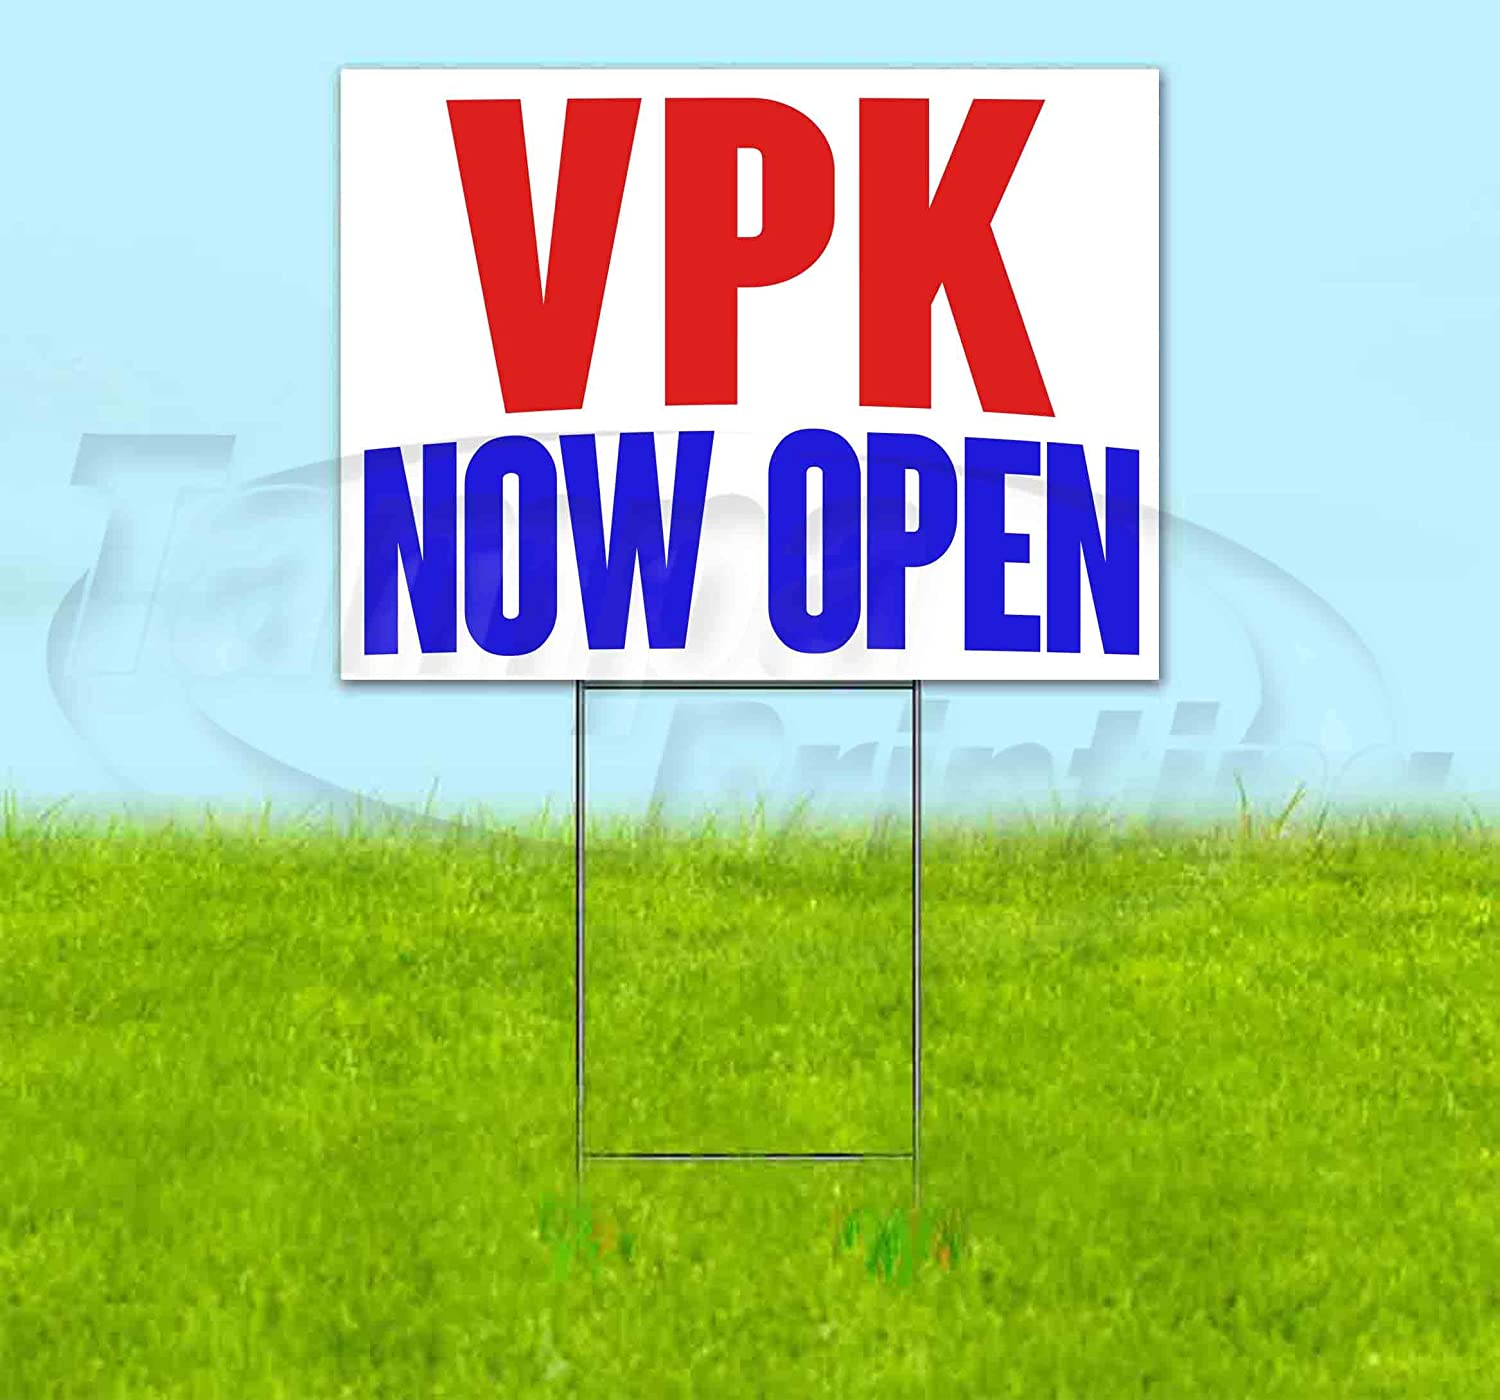 VPK Now Open Mail order 18